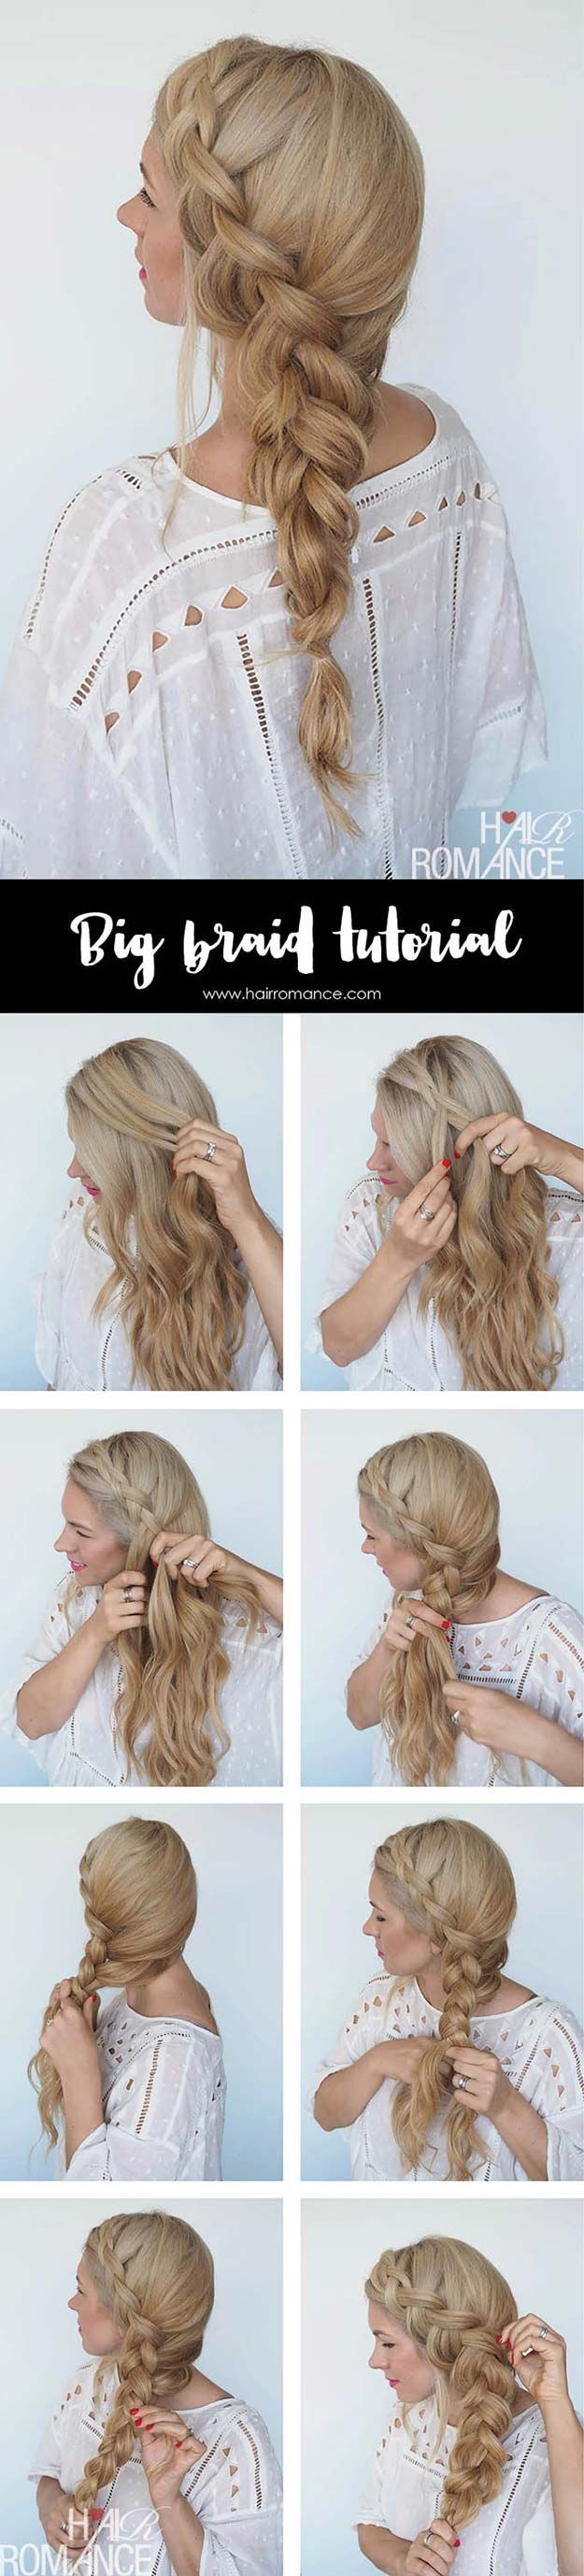 40 Of The Best Cute Hair Braiding Tutorials Coiffure Tutoriels Coiffure Cheveux